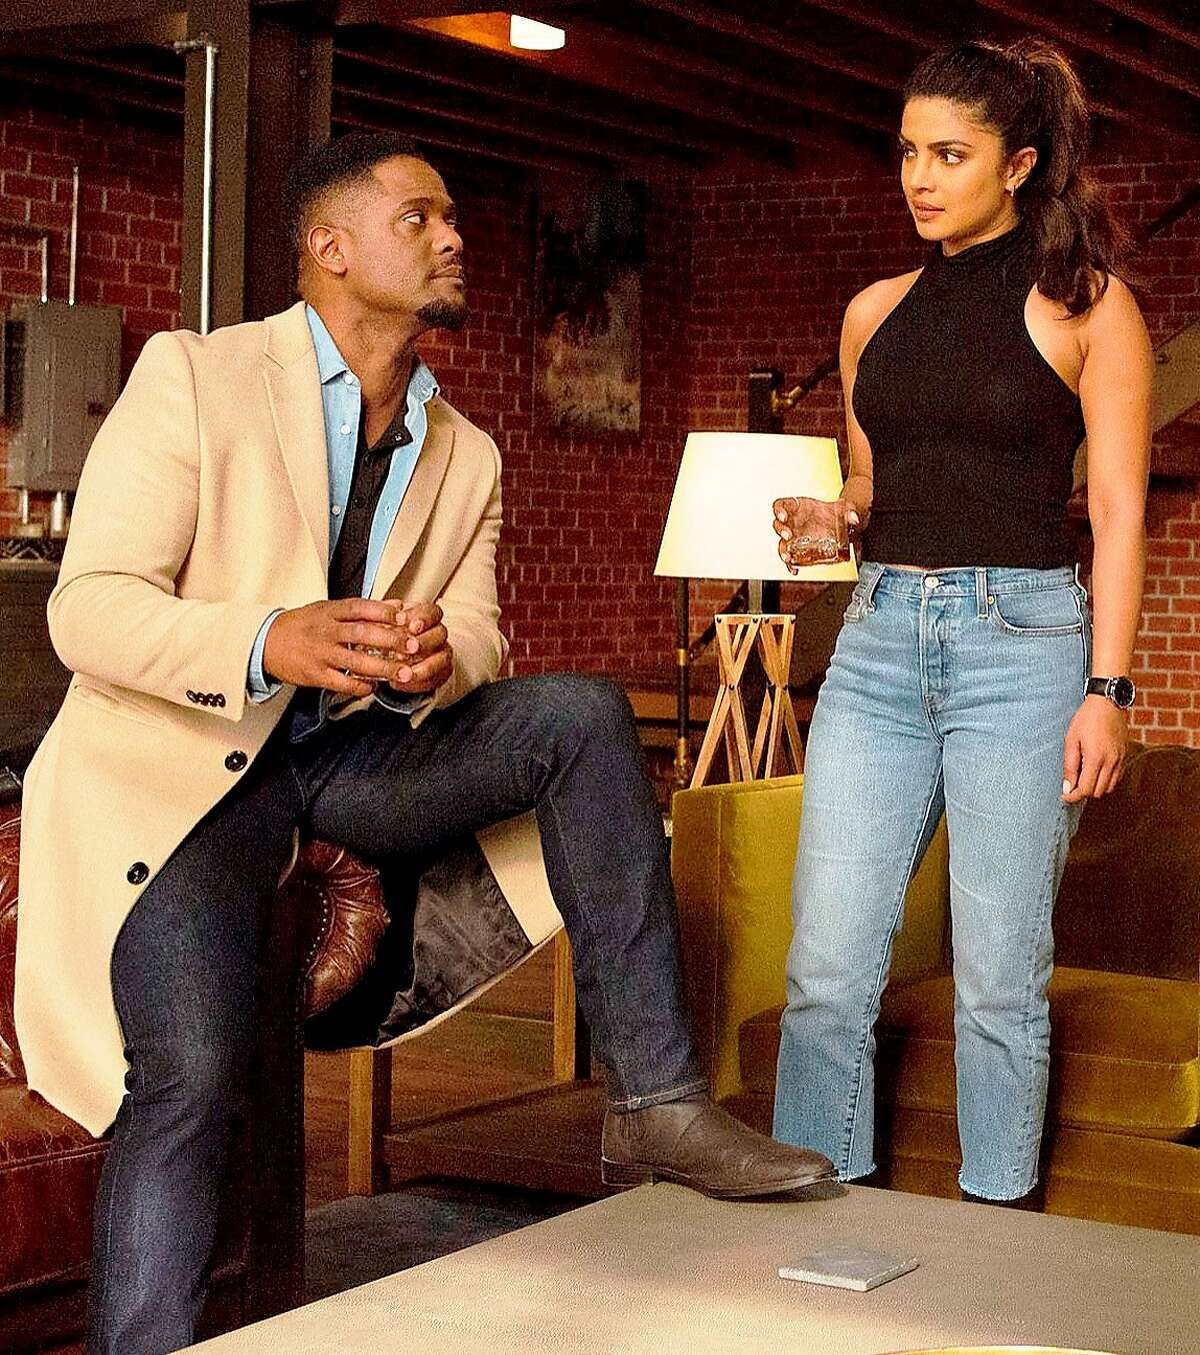 QuanticoABC canceled the series after three seasons.